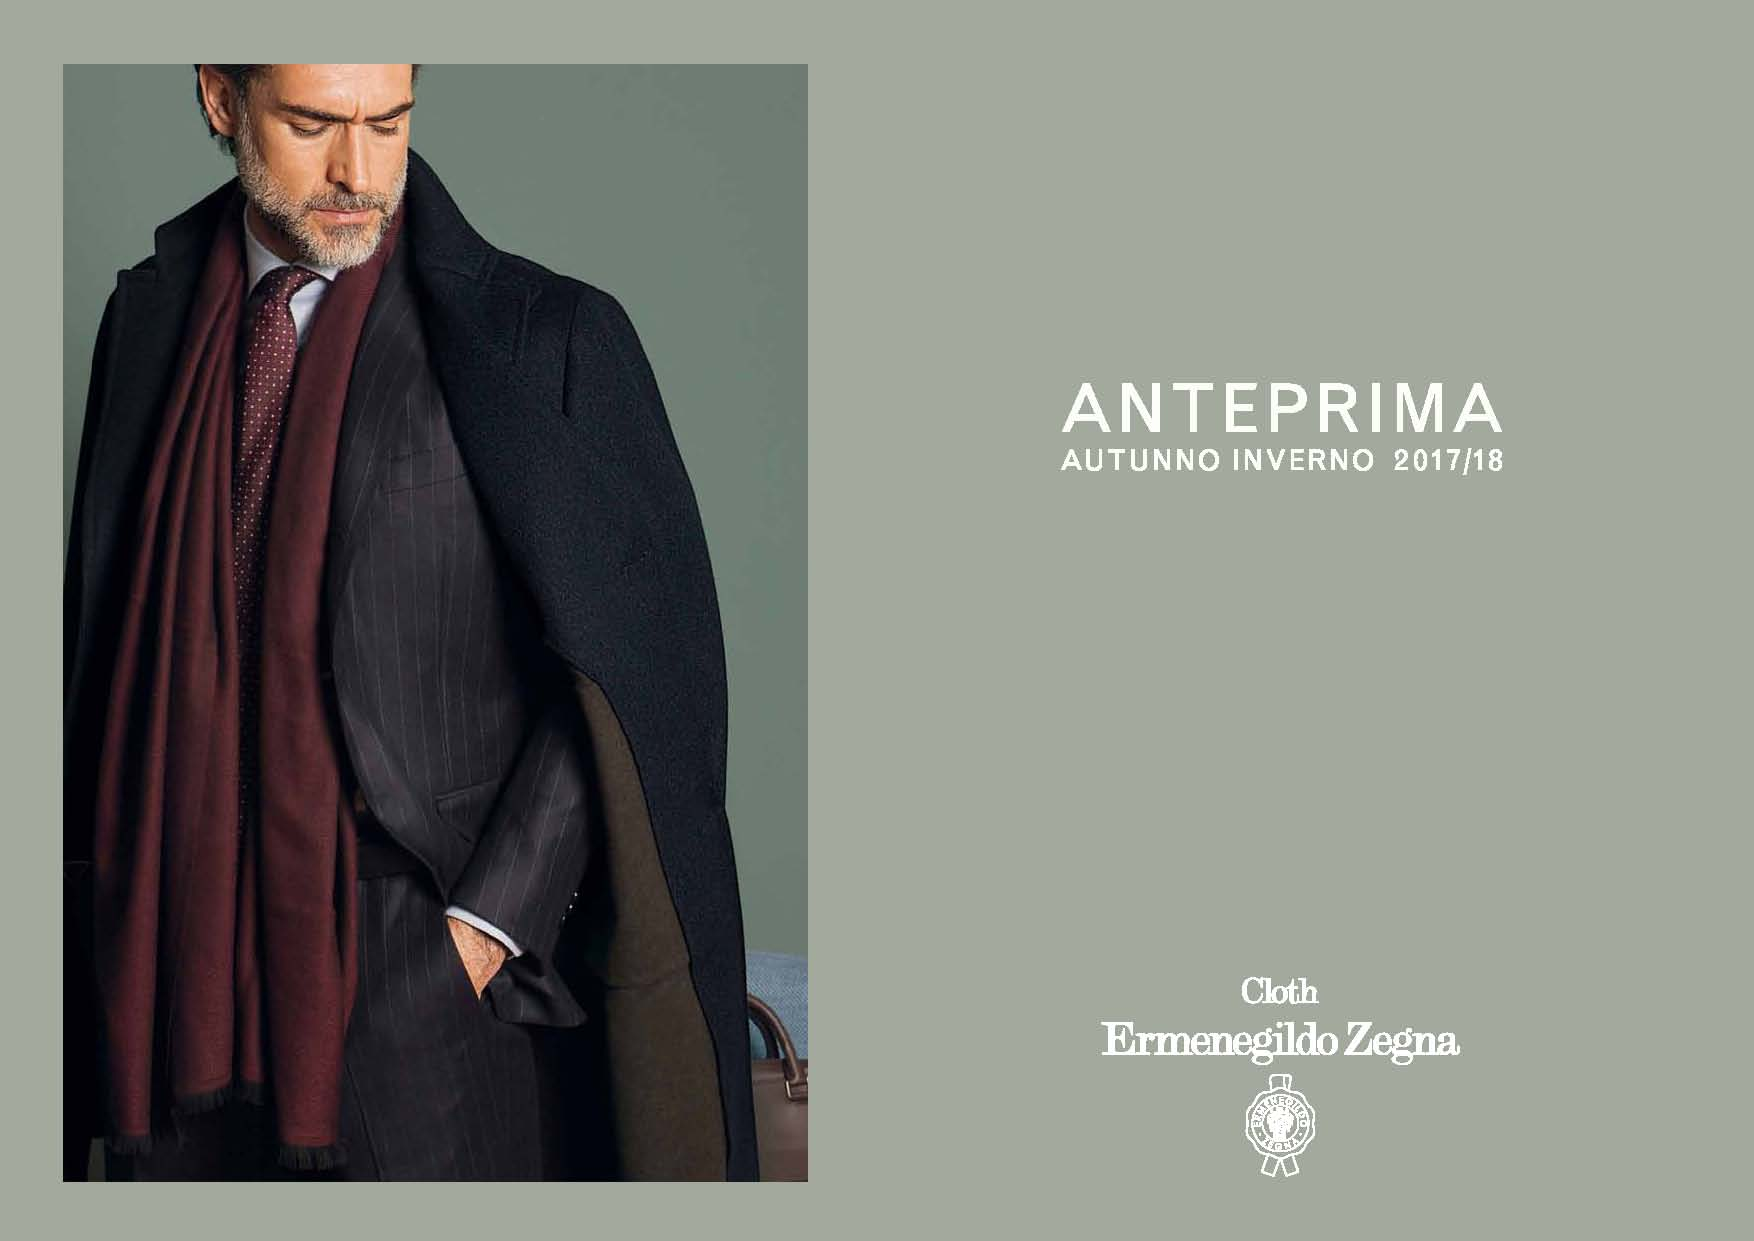 attachments/events/Zegna2017-2018/Page_01.jpg